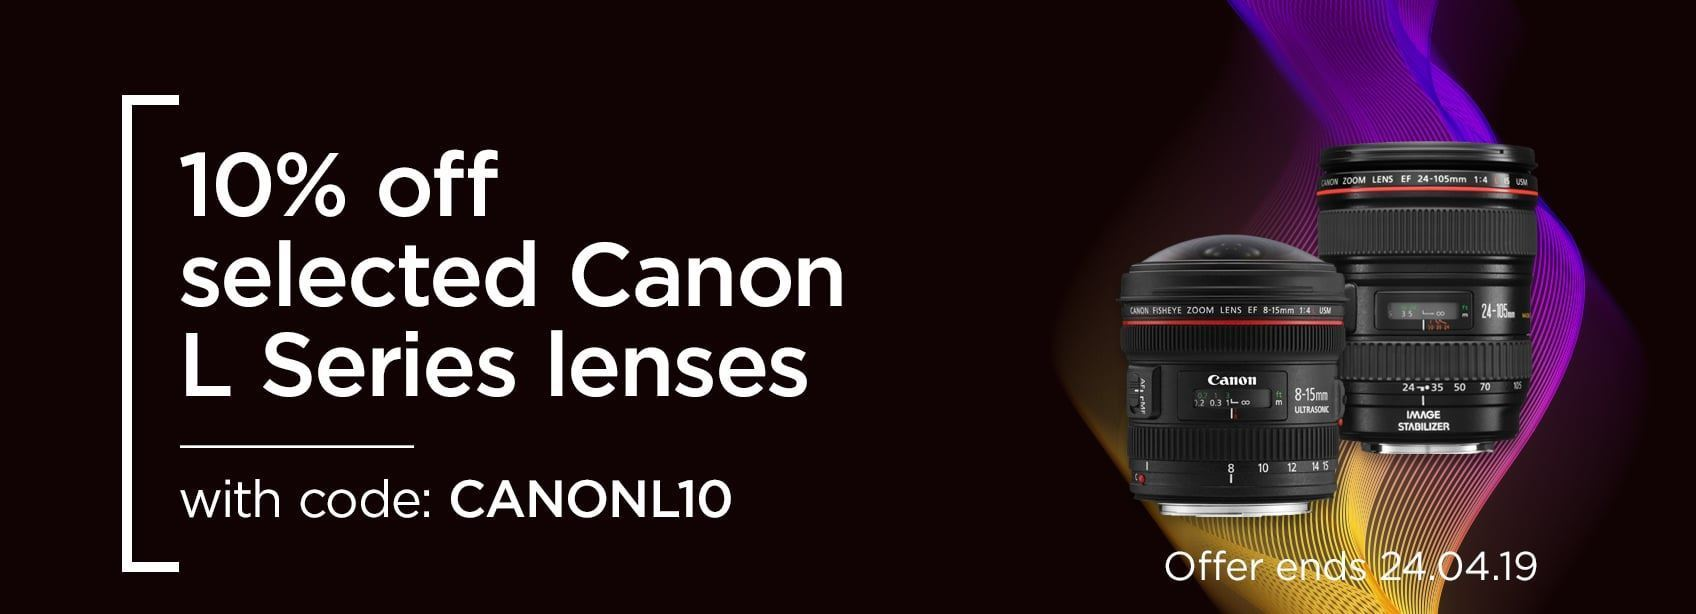 10% off selected Canon L Series Lenses